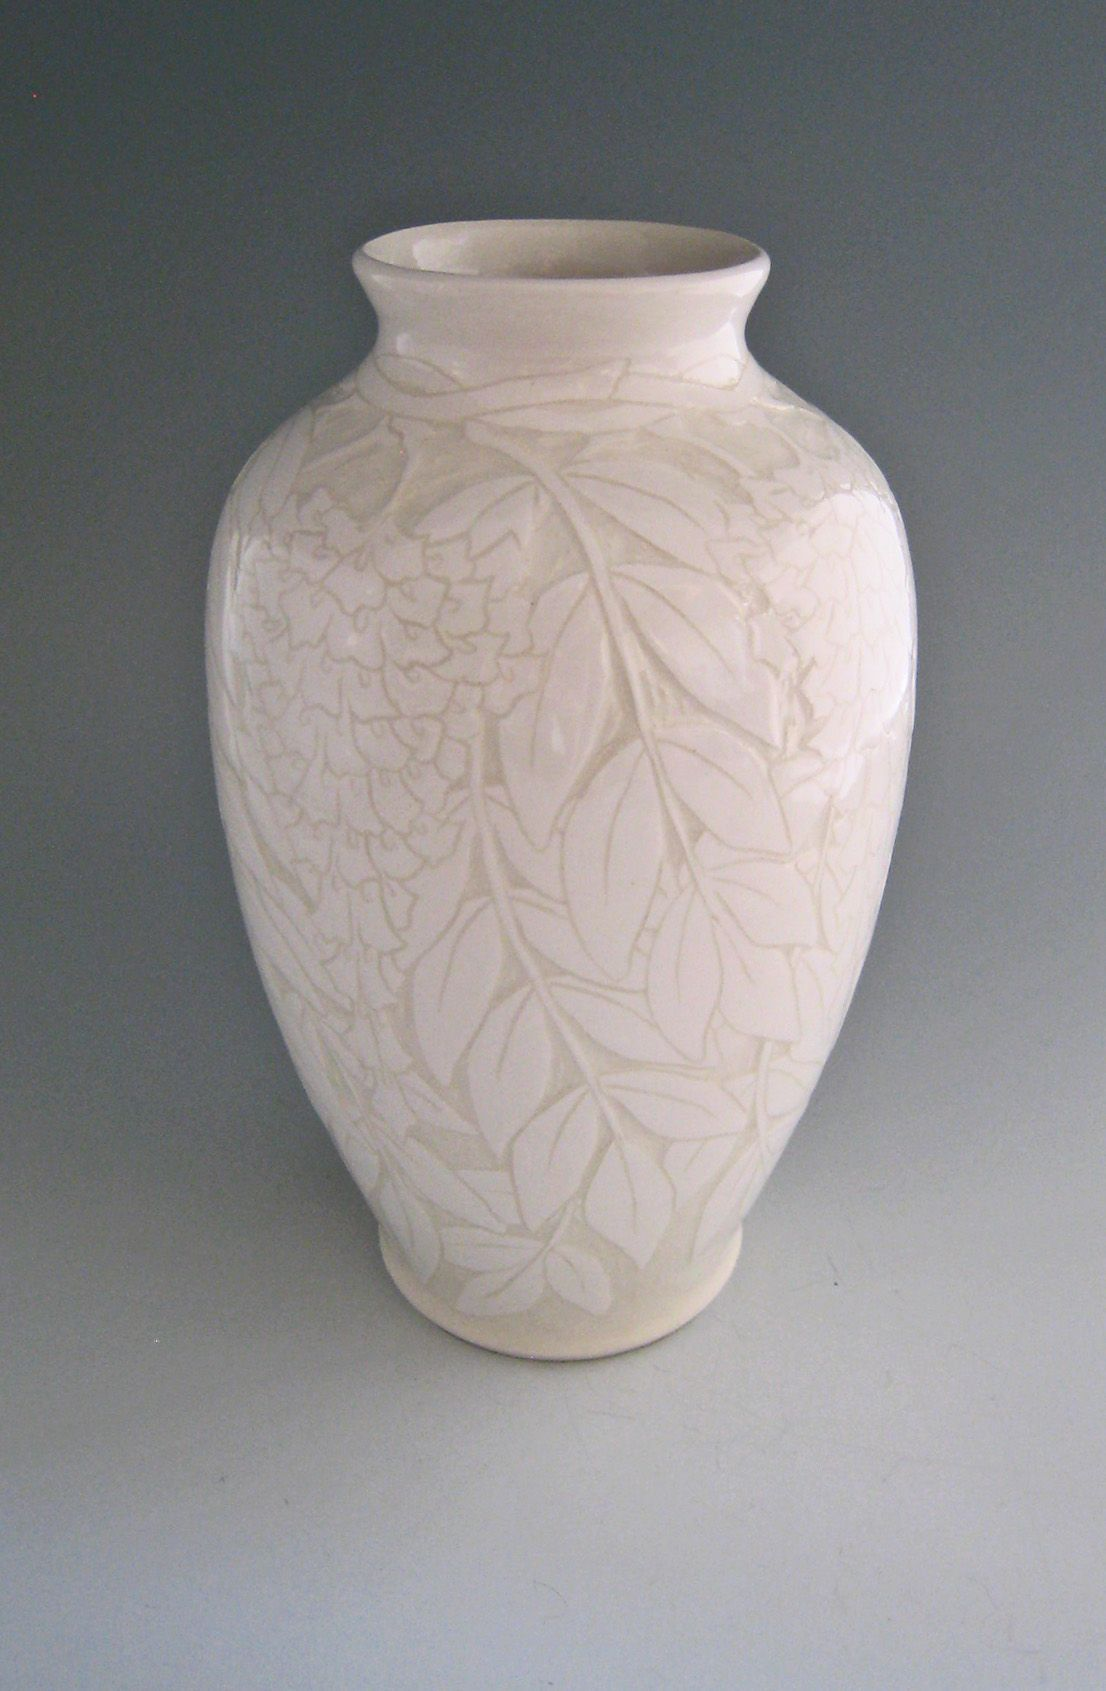 Ken tracy handmade decorated white on white pottery vase nouveau ken tracy handmade decorated white on white pottery vase nouveau sgraffito flowers pottery clay ceramics reviewsmspy